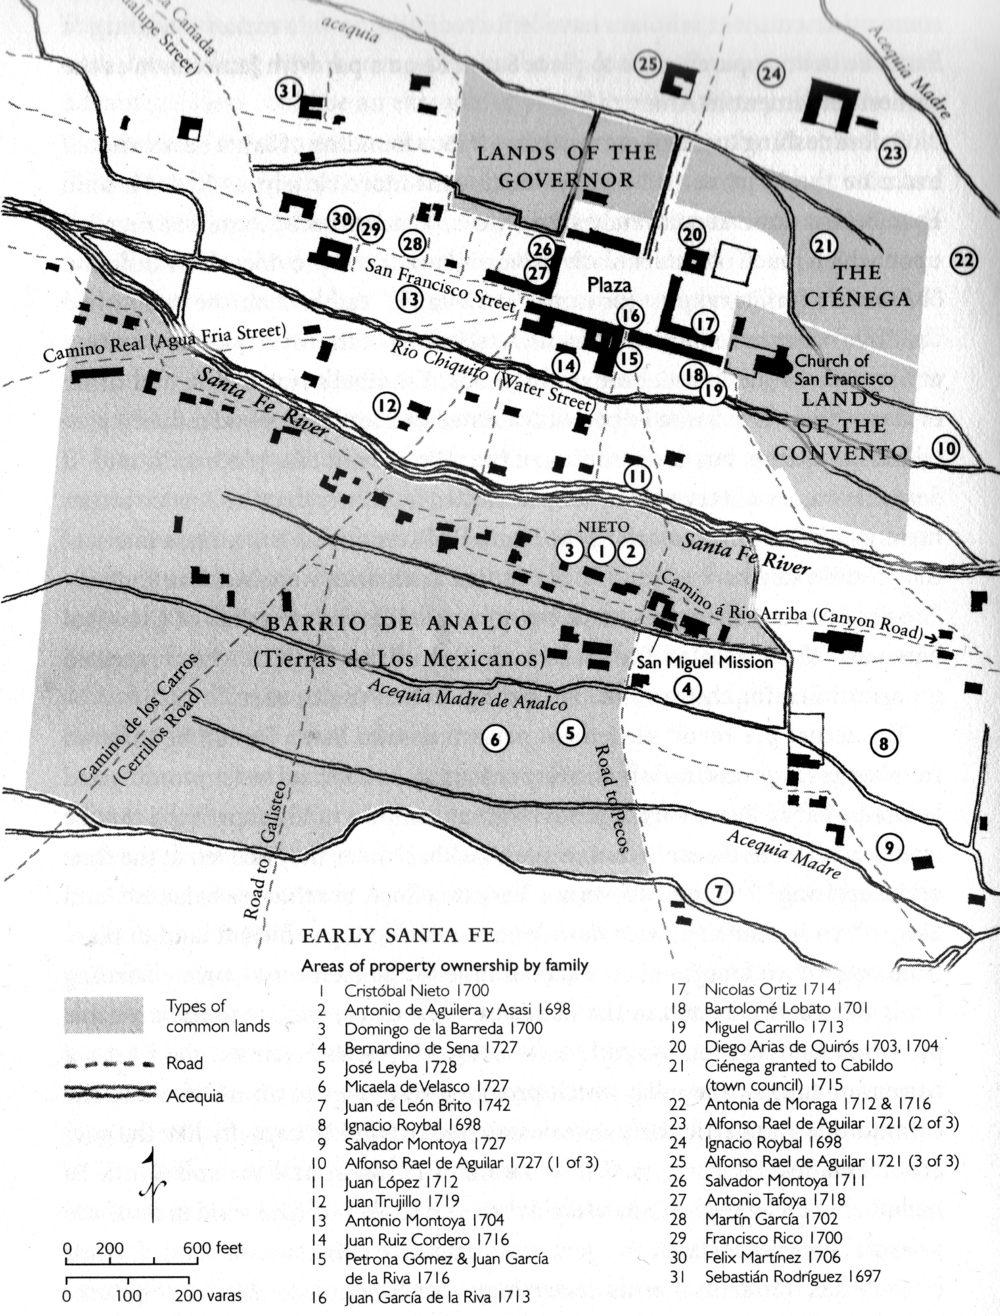 25 - Downtown Santa Fe 1730 (Map 3)